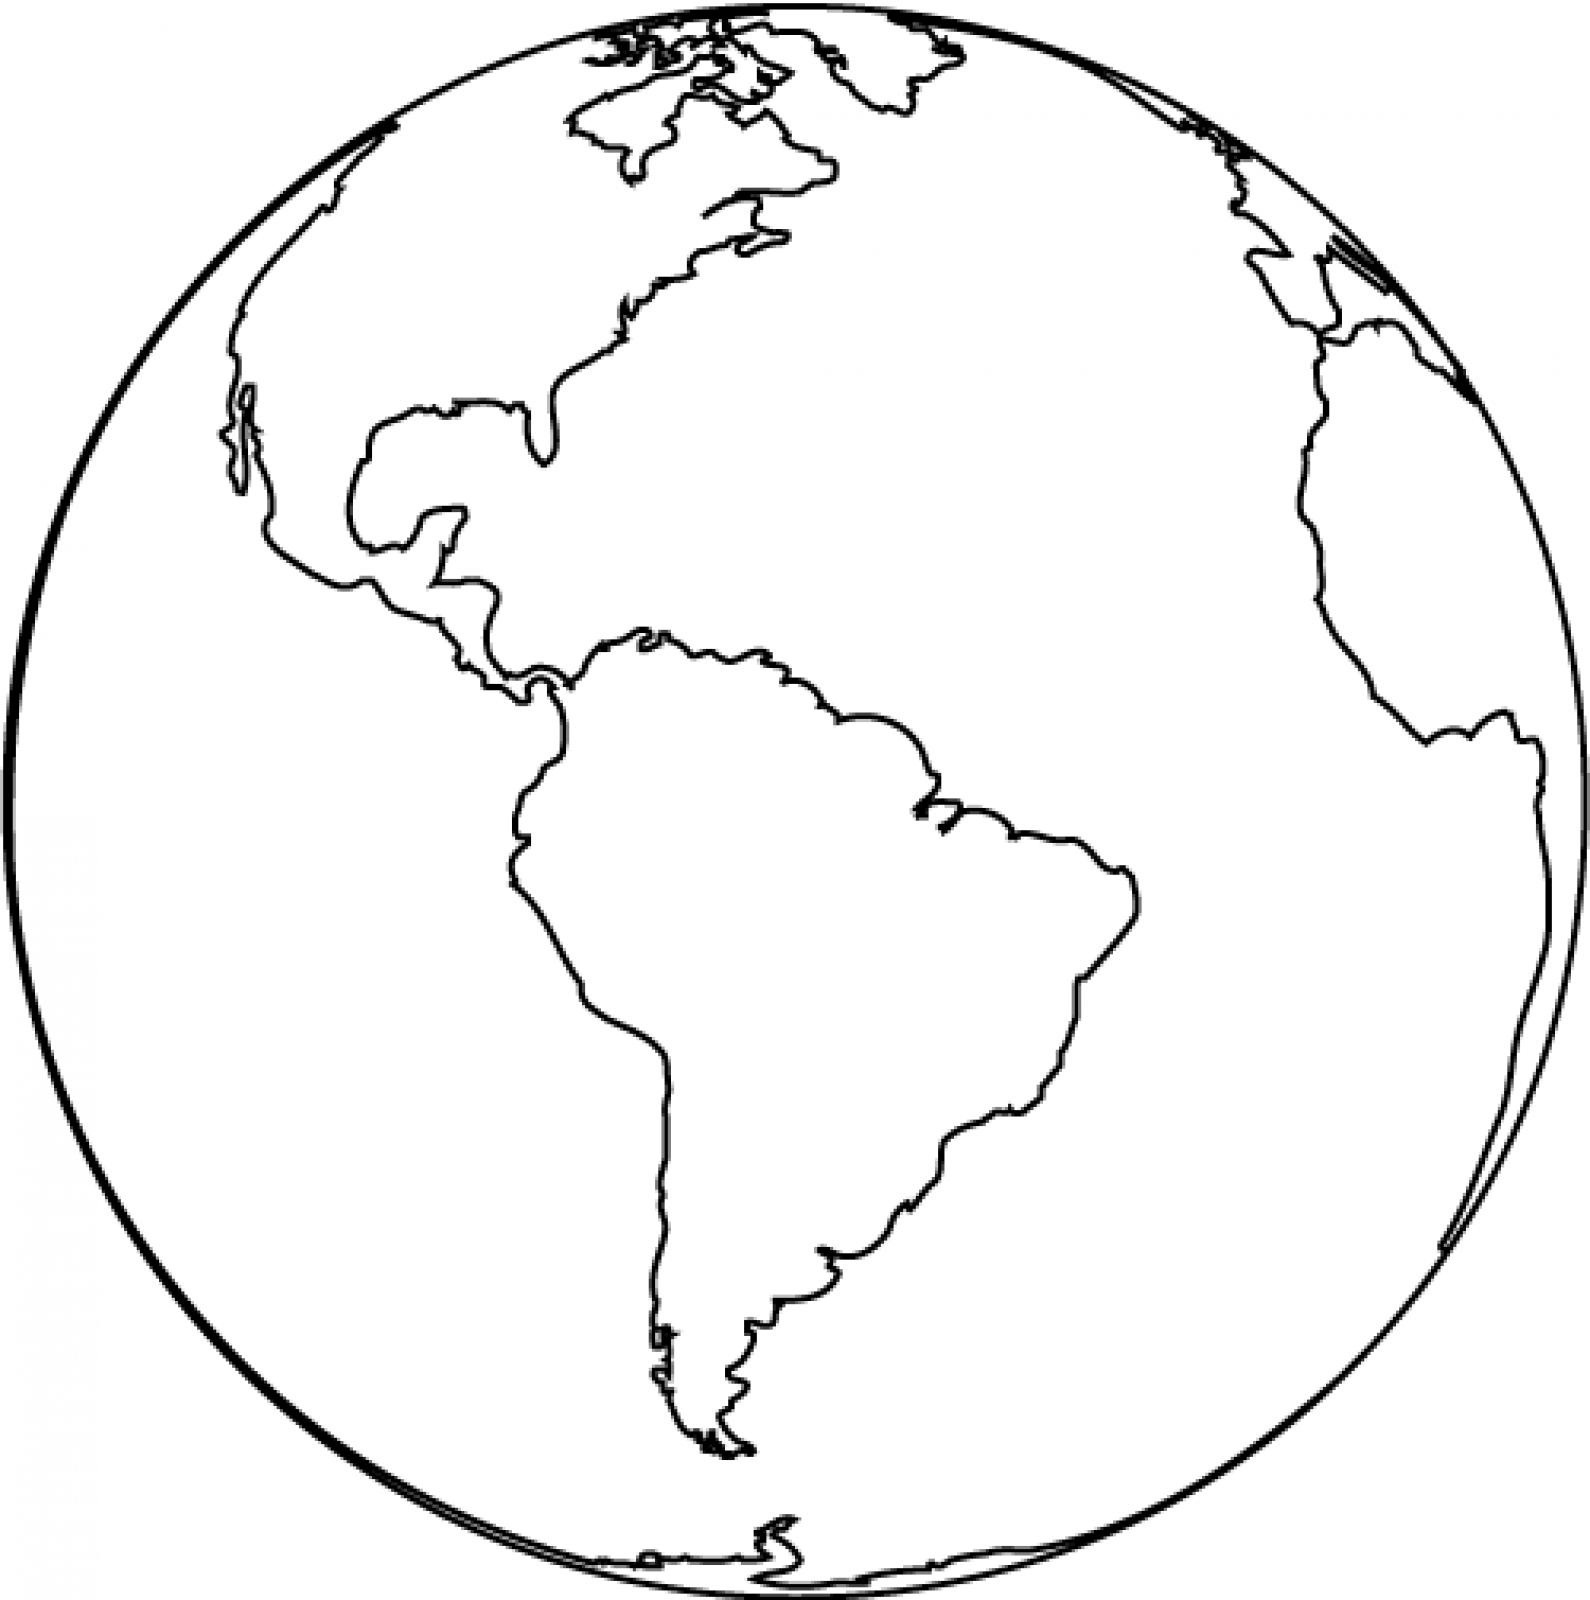 1590x1600 Drawing Of The Earth Planet Earth Clipart Colored